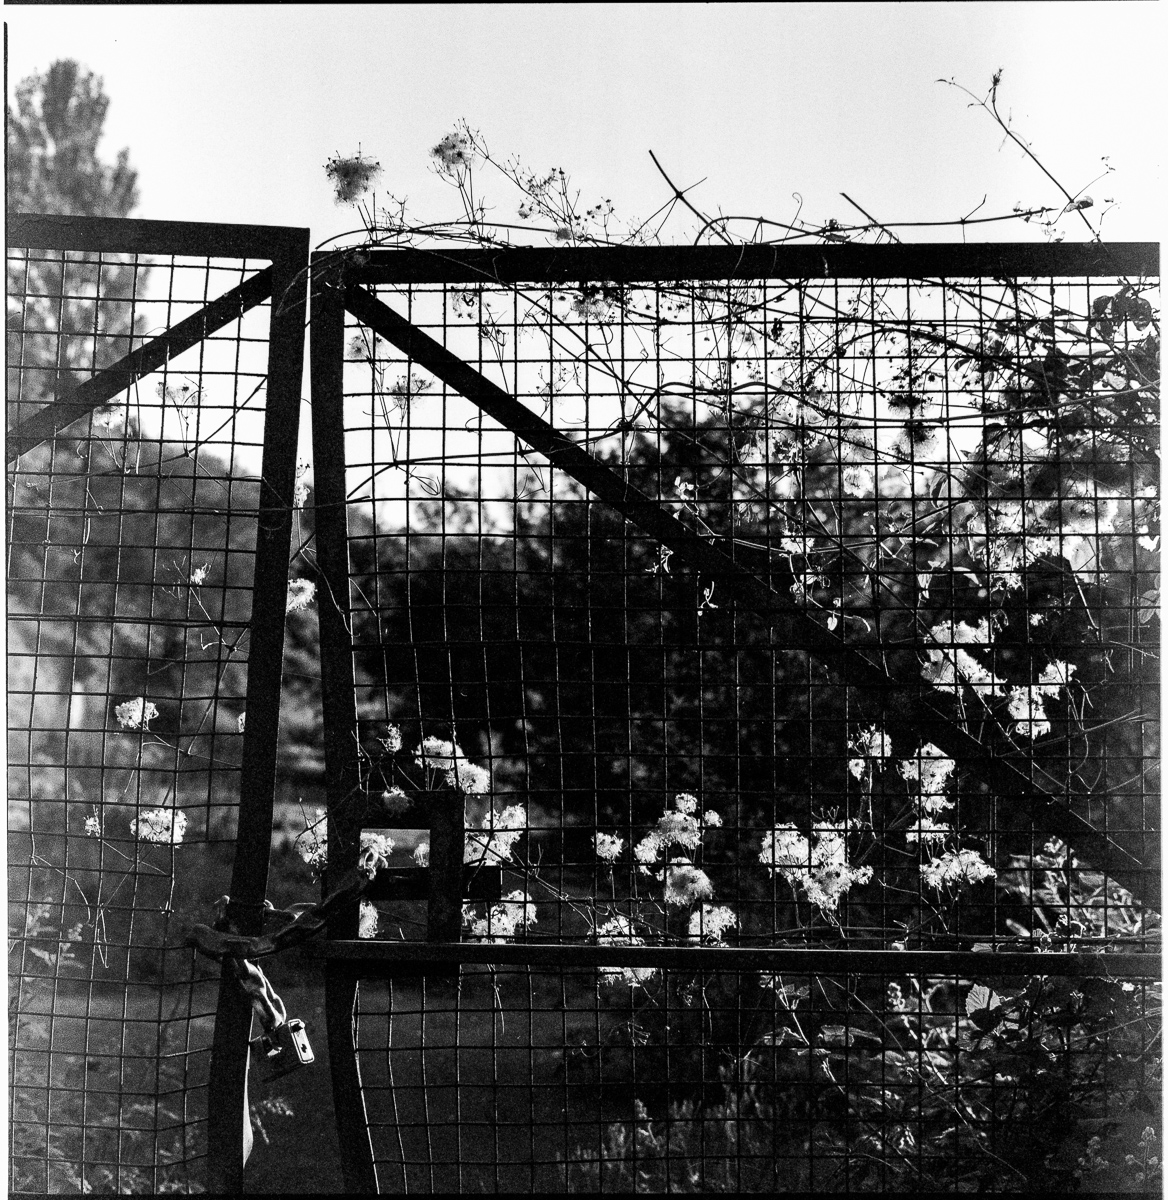 Black and white photo of bent metal yard gates with rambling weeds climbing across them and the seed heads back-lit by the sun.